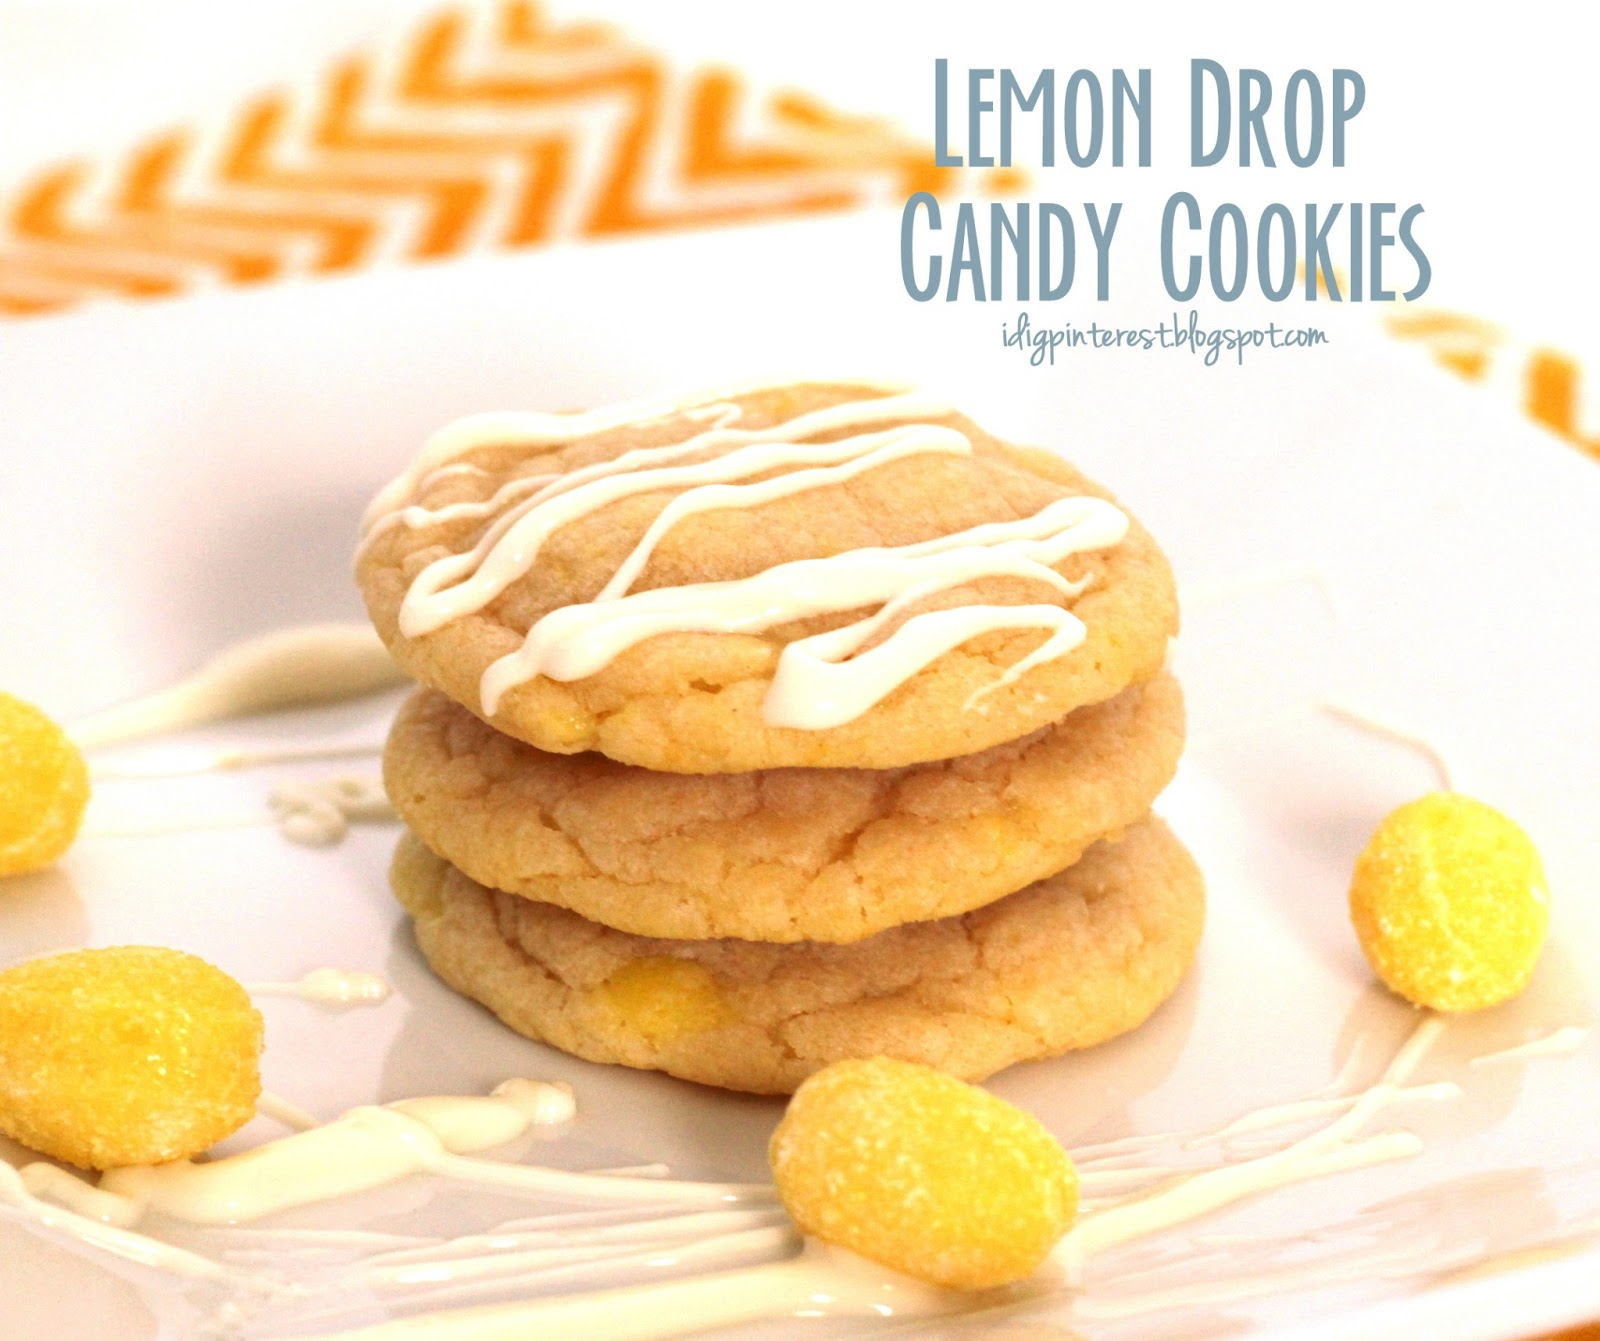 Lemon Drop Candy Cookies - I Dig Pinterest